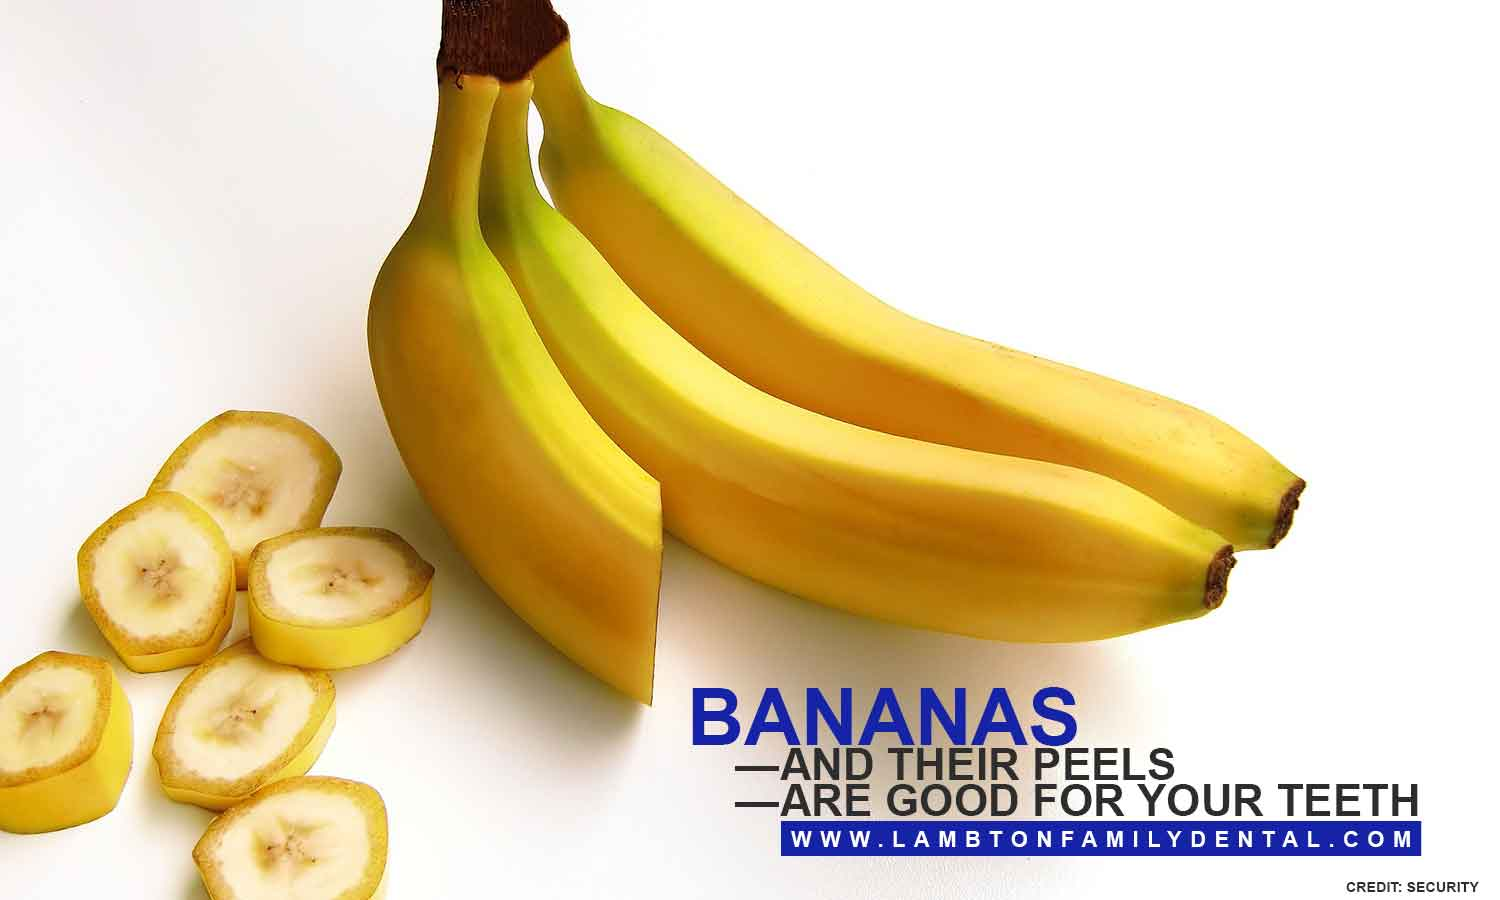 Bananas—and their peels—are good for your teeth